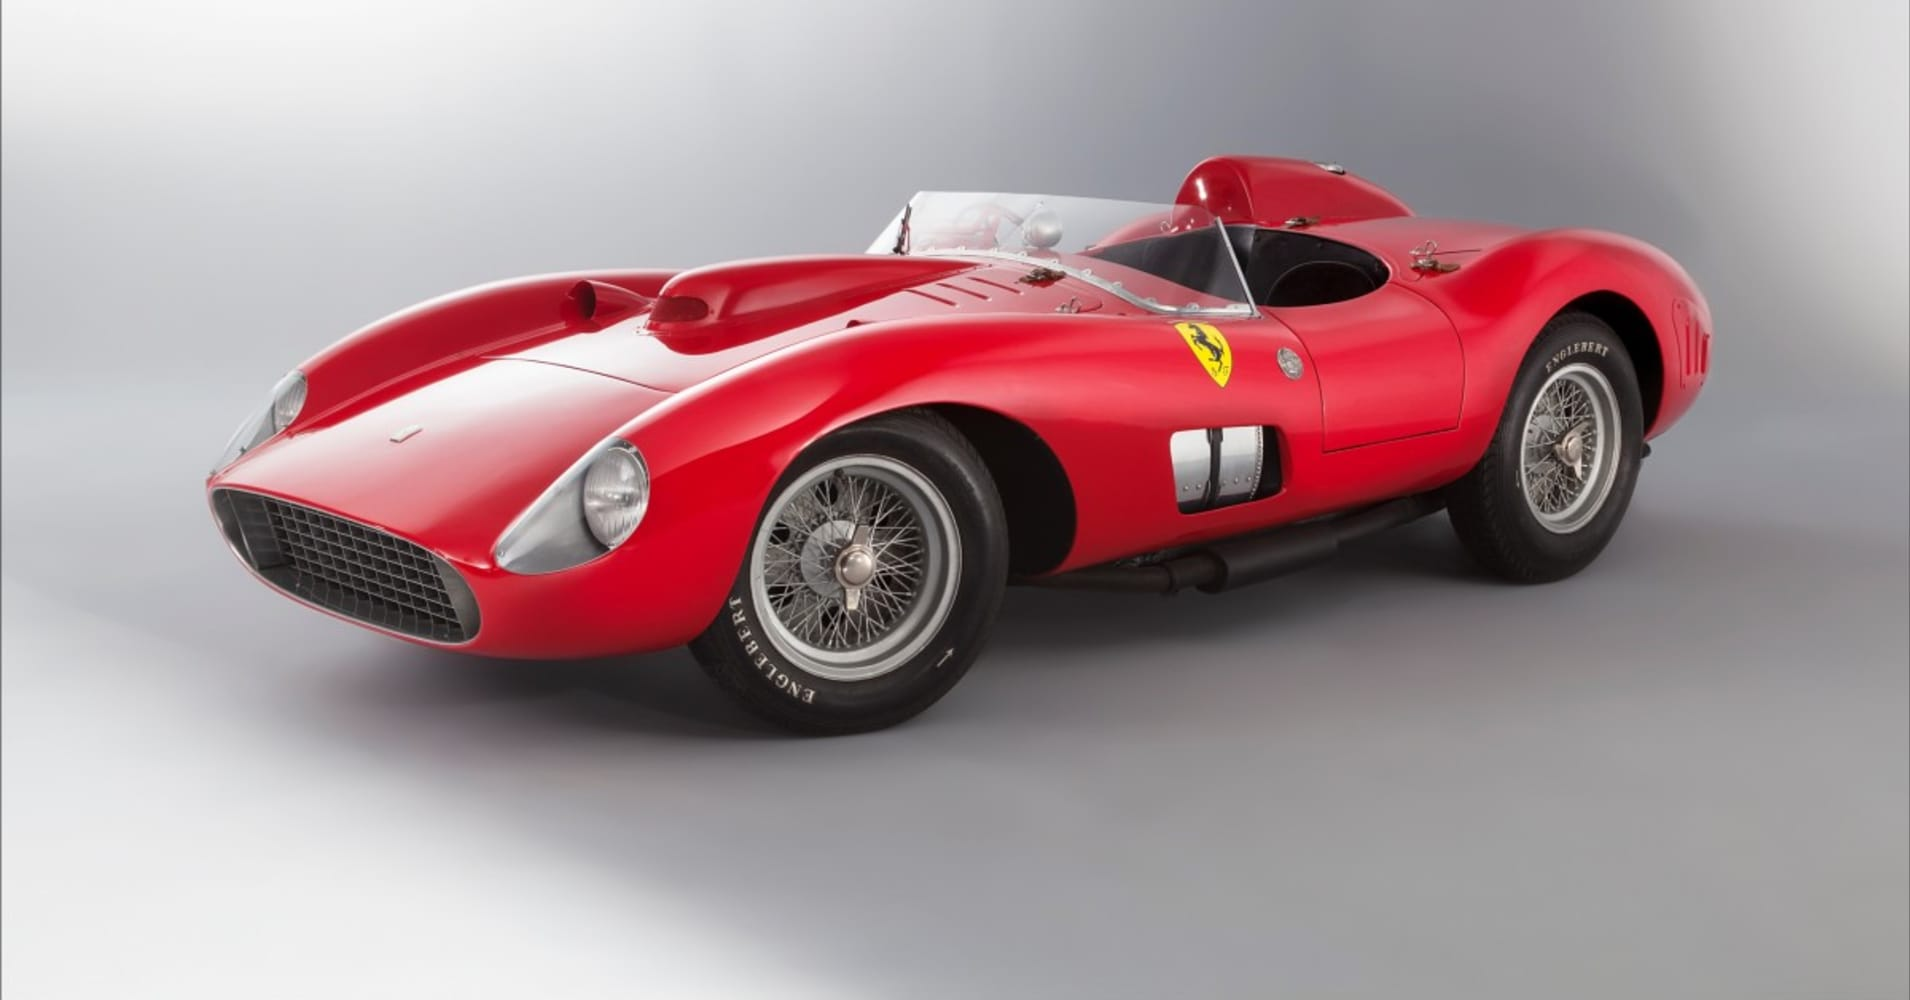 Most expensive car ever auctioned? It depends